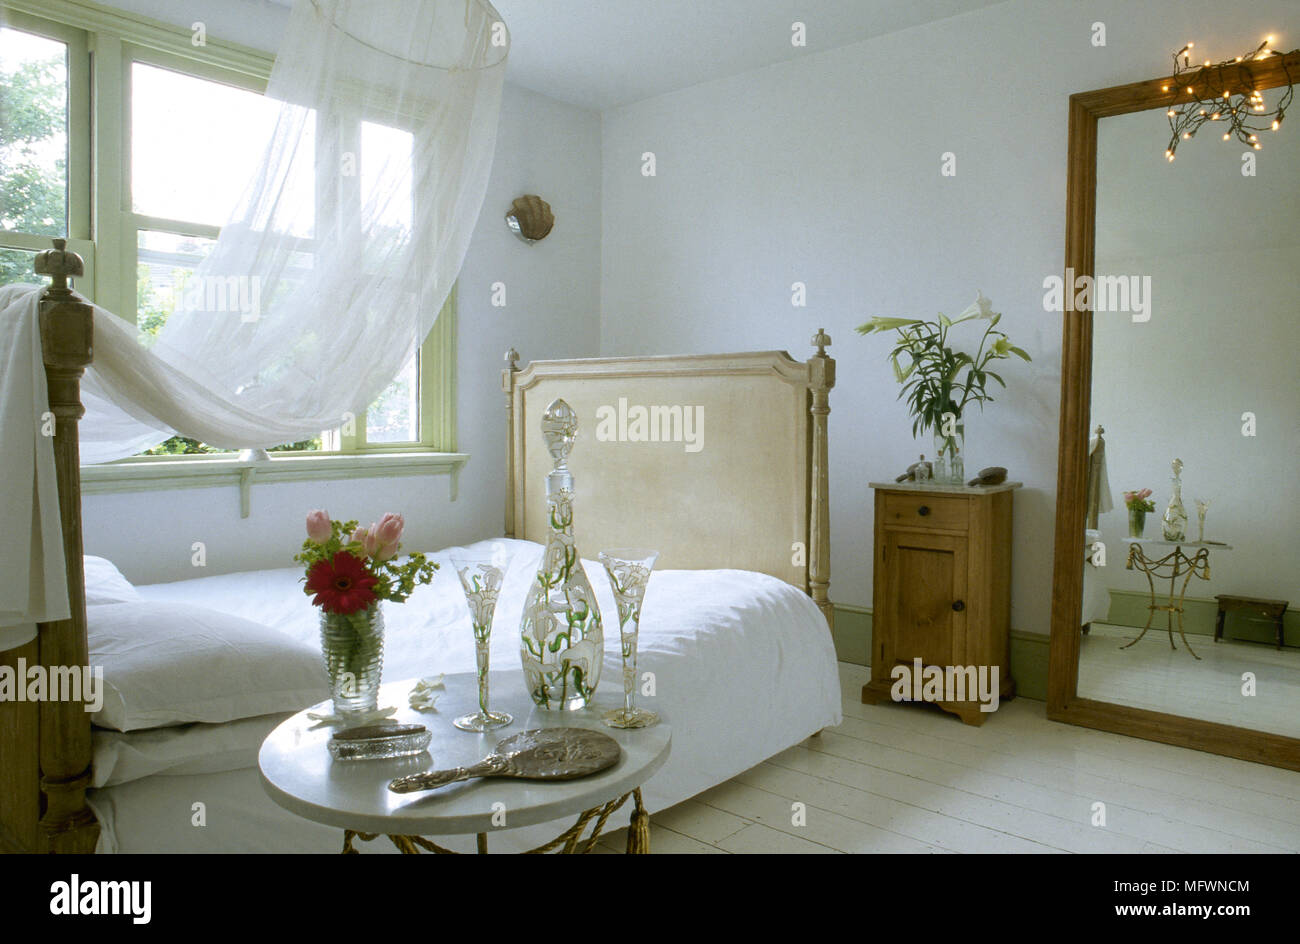 https www alamy com romantic bedroom with sheer canopy over a double bed large mirror bedside table and a sunny window image181889140 html